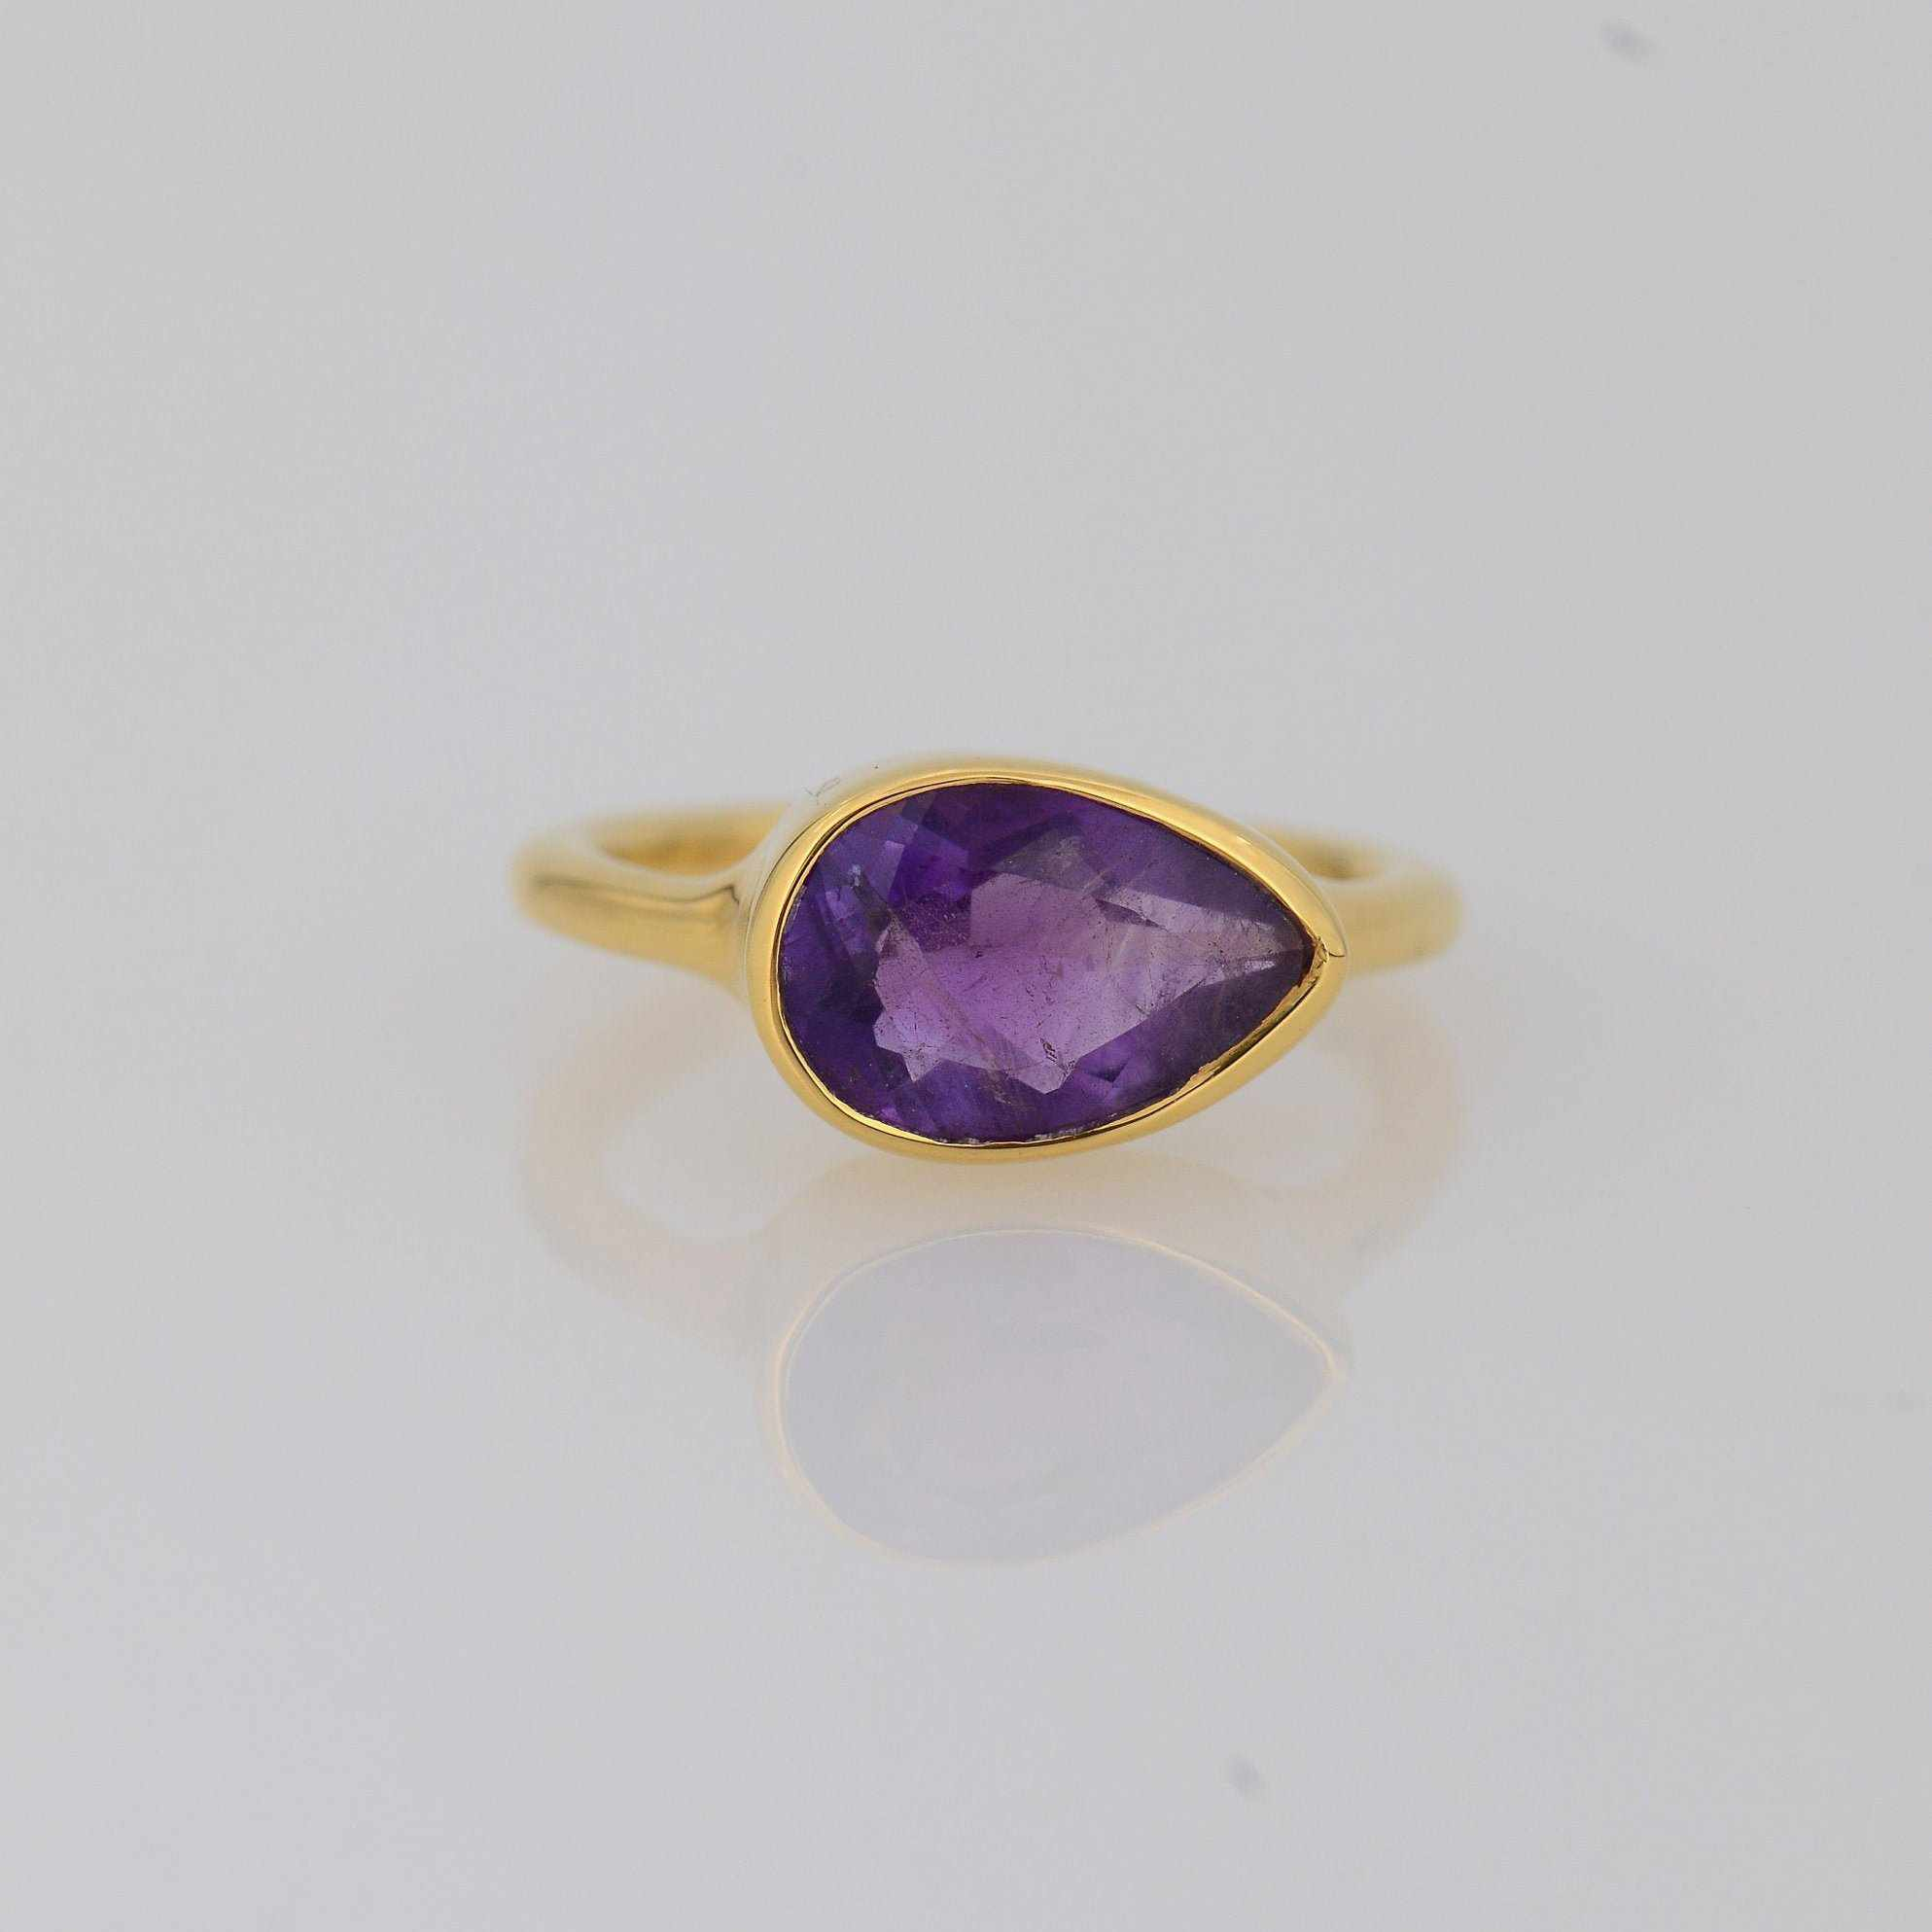 Amethyst Ring, Bezel set ring, February Birthstone Ring, Gold Ring, TearDrop Shaped Ring, Gemstone Ring, Stacking Ring, Purple Gemstone ring